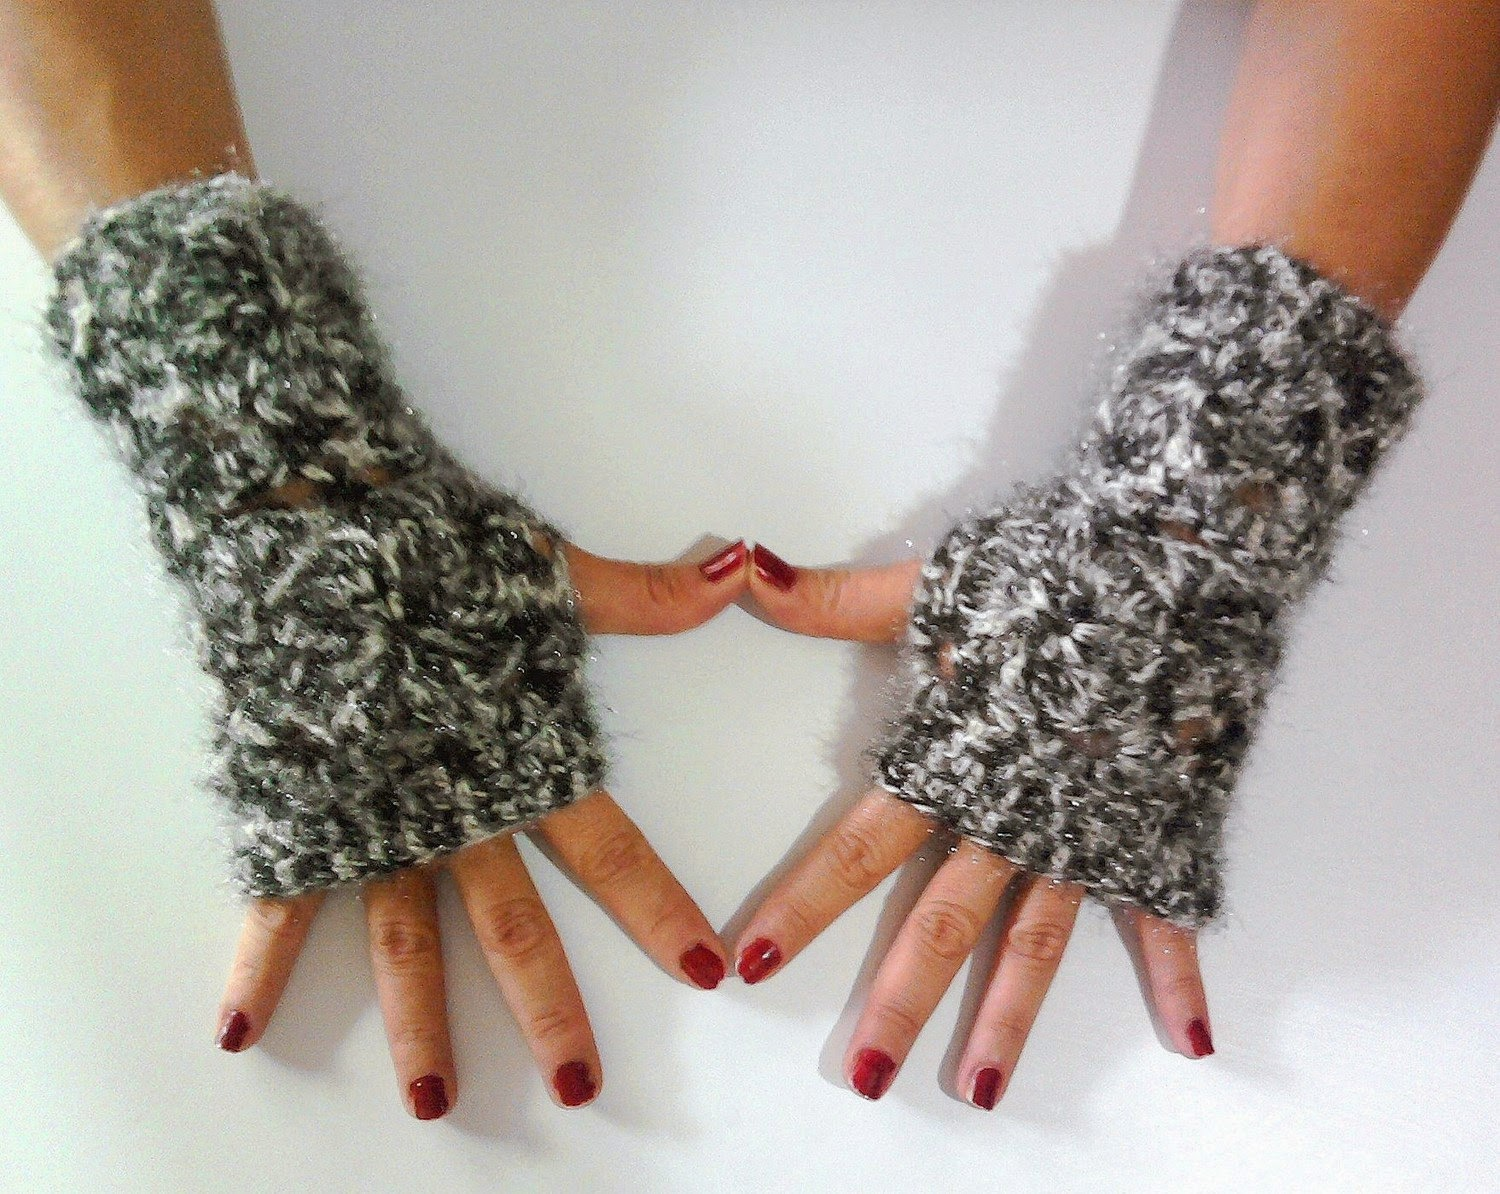 https://www.etsy.com/listing/64099524/christmas-sale-crochet-fingerless-gloves?ref=shop_home_active_14